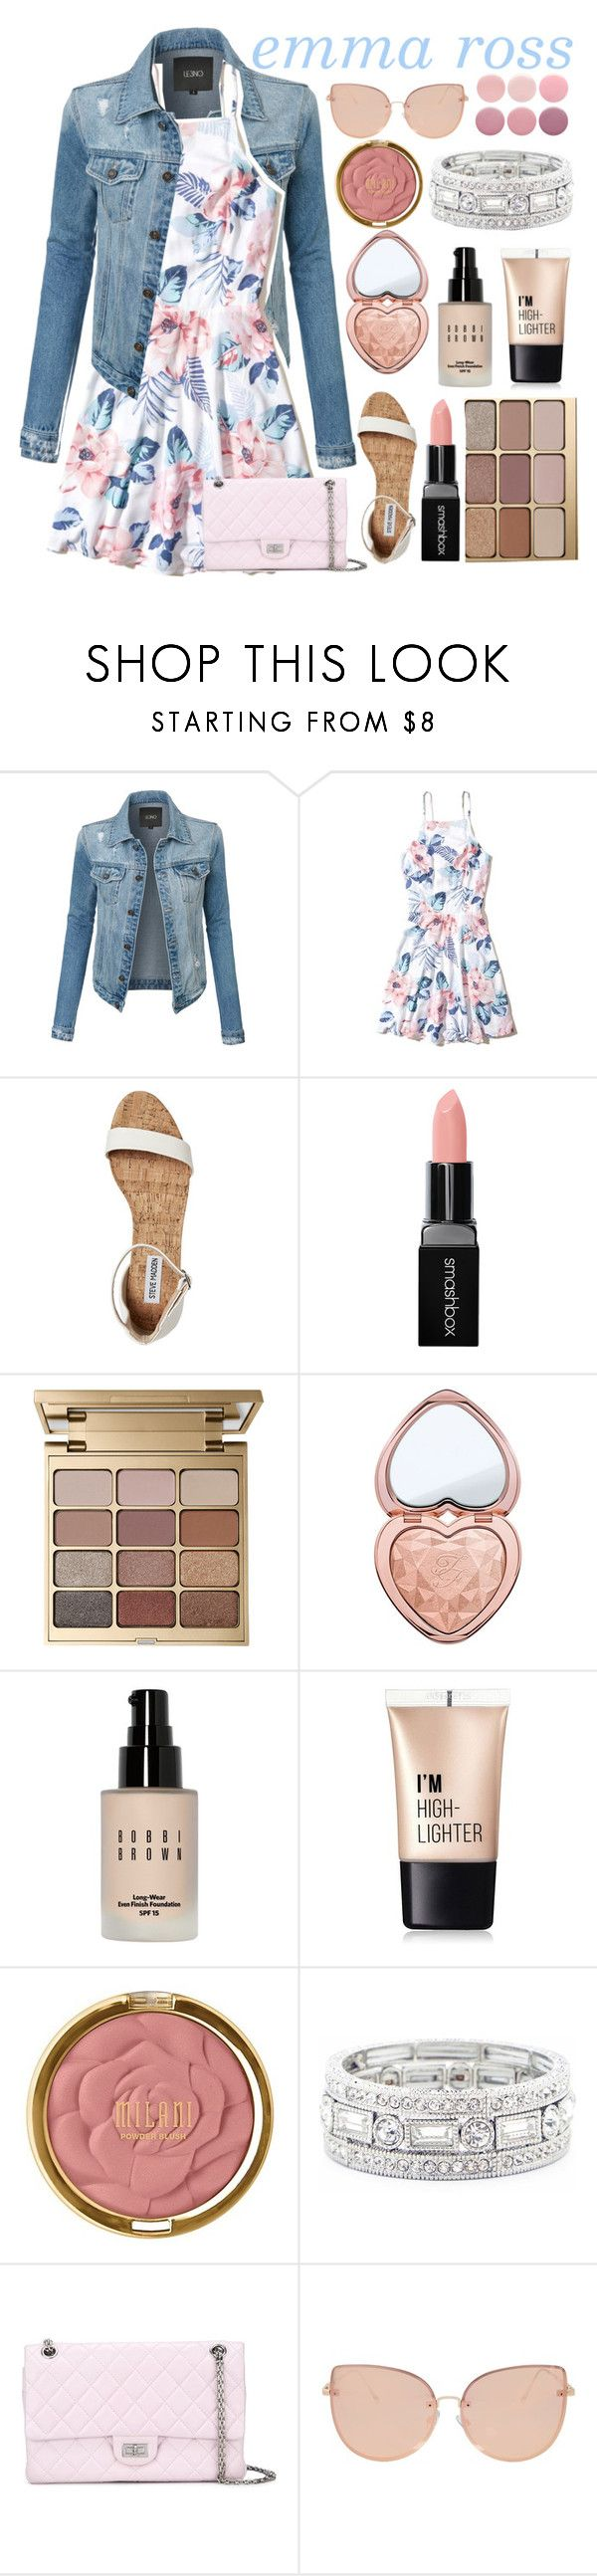 """emma ross inspired outfit🌸"" by s-tyleonscreen ❤ liked on Polyvore featuring LE3NO, Hollister Co., Smashbox, Stila, Too Faced Cosmetics, Bobbi Brown Cosmetics, Charlotte Russe, Milani, Sole Society and Chanel"